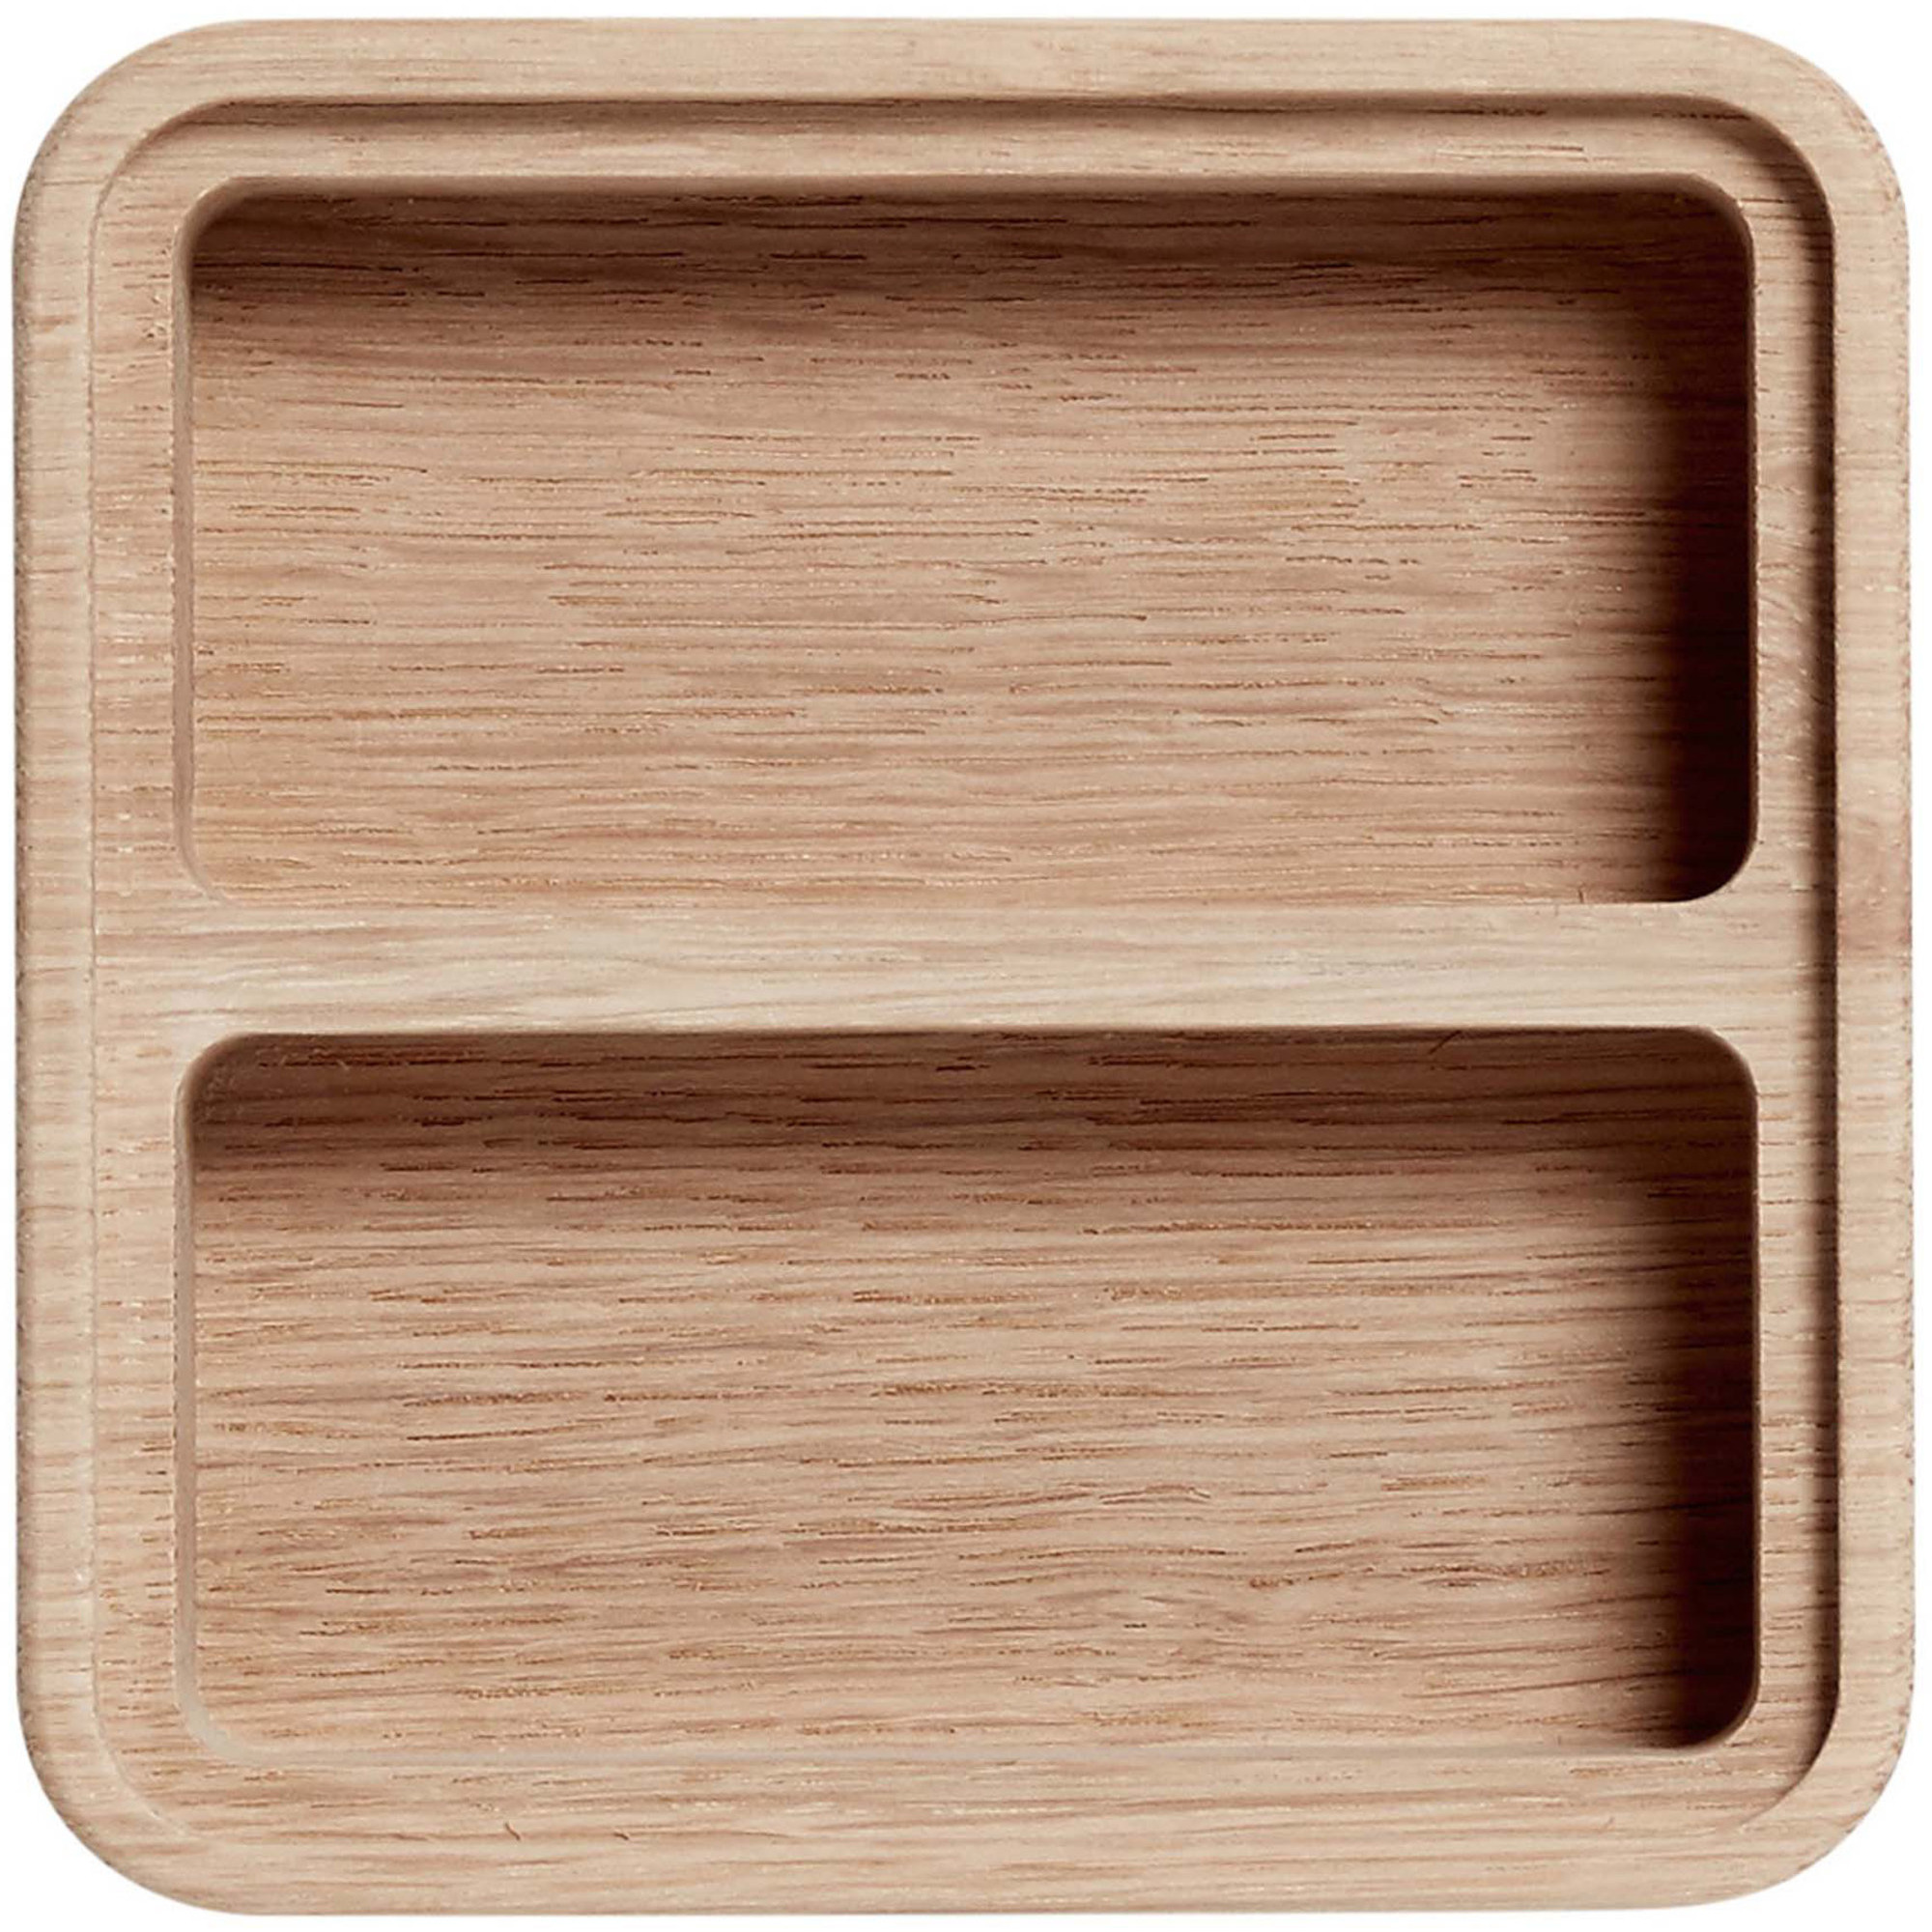 Bilde av Andersen Furniture Create Me Box Med 2 Lommer 12 X 12 Cm Oak